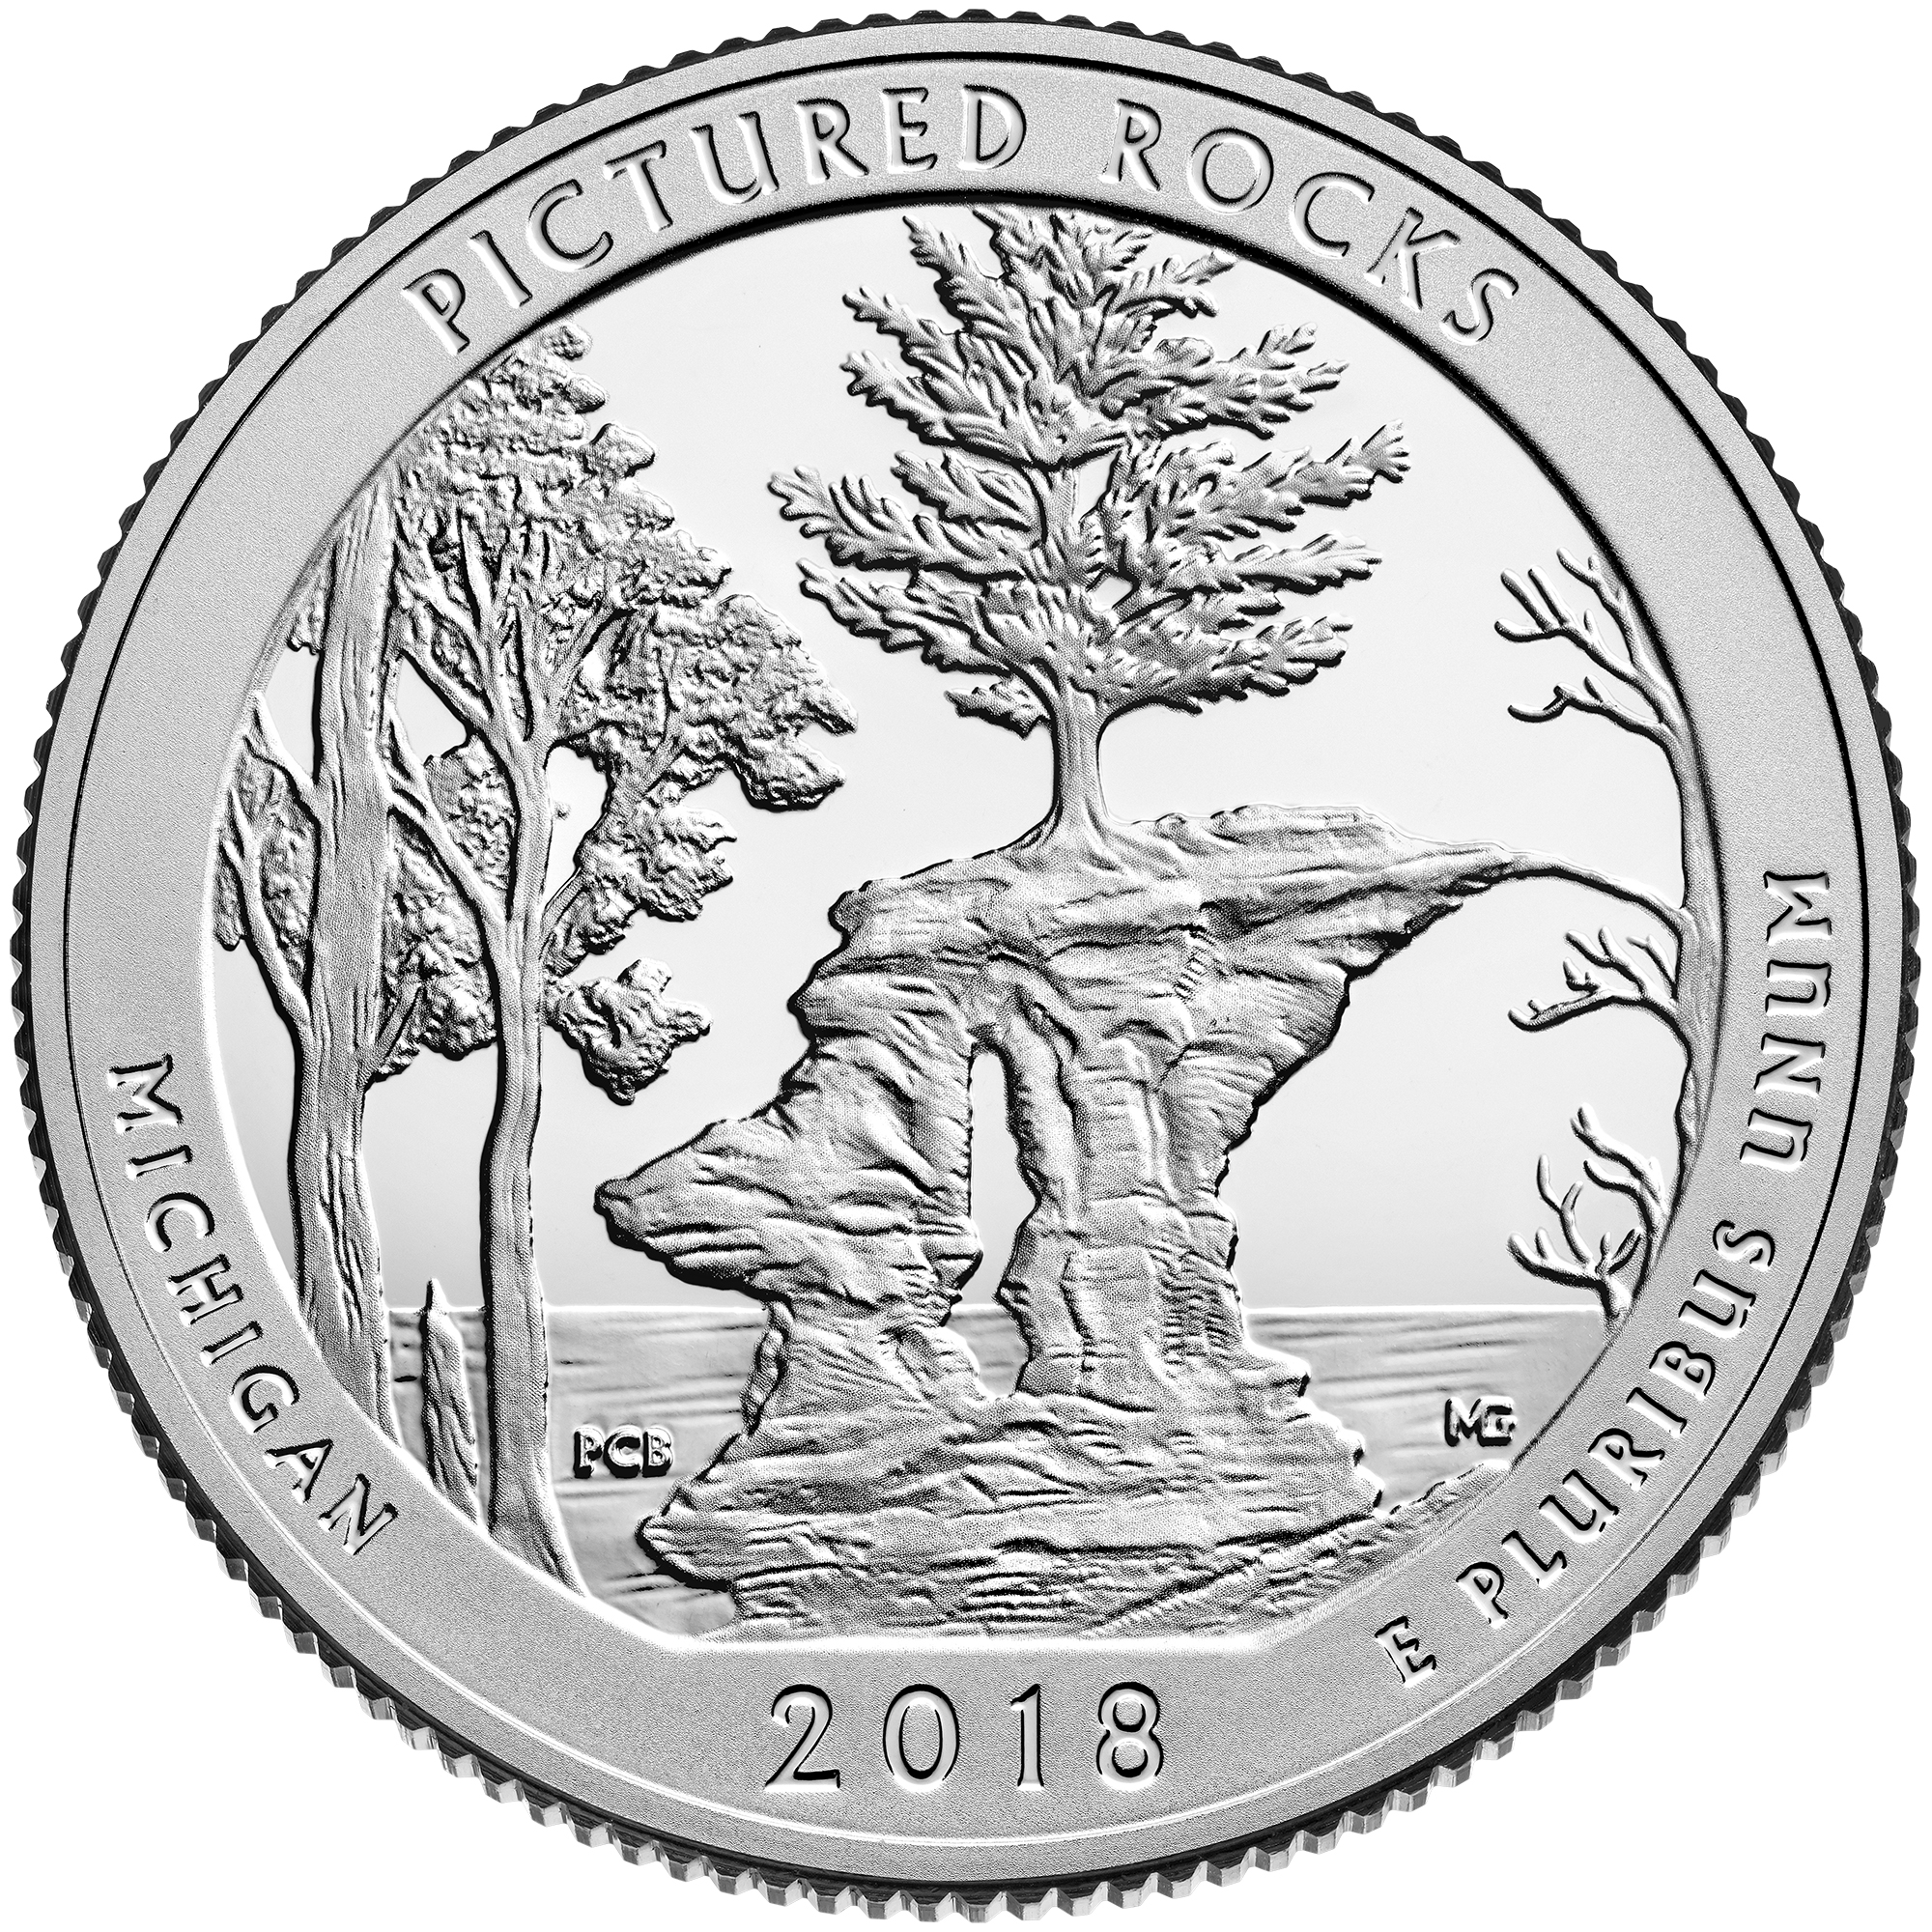 2018 : Pictured Rocks National Lakeshore Quarter Officially Launched